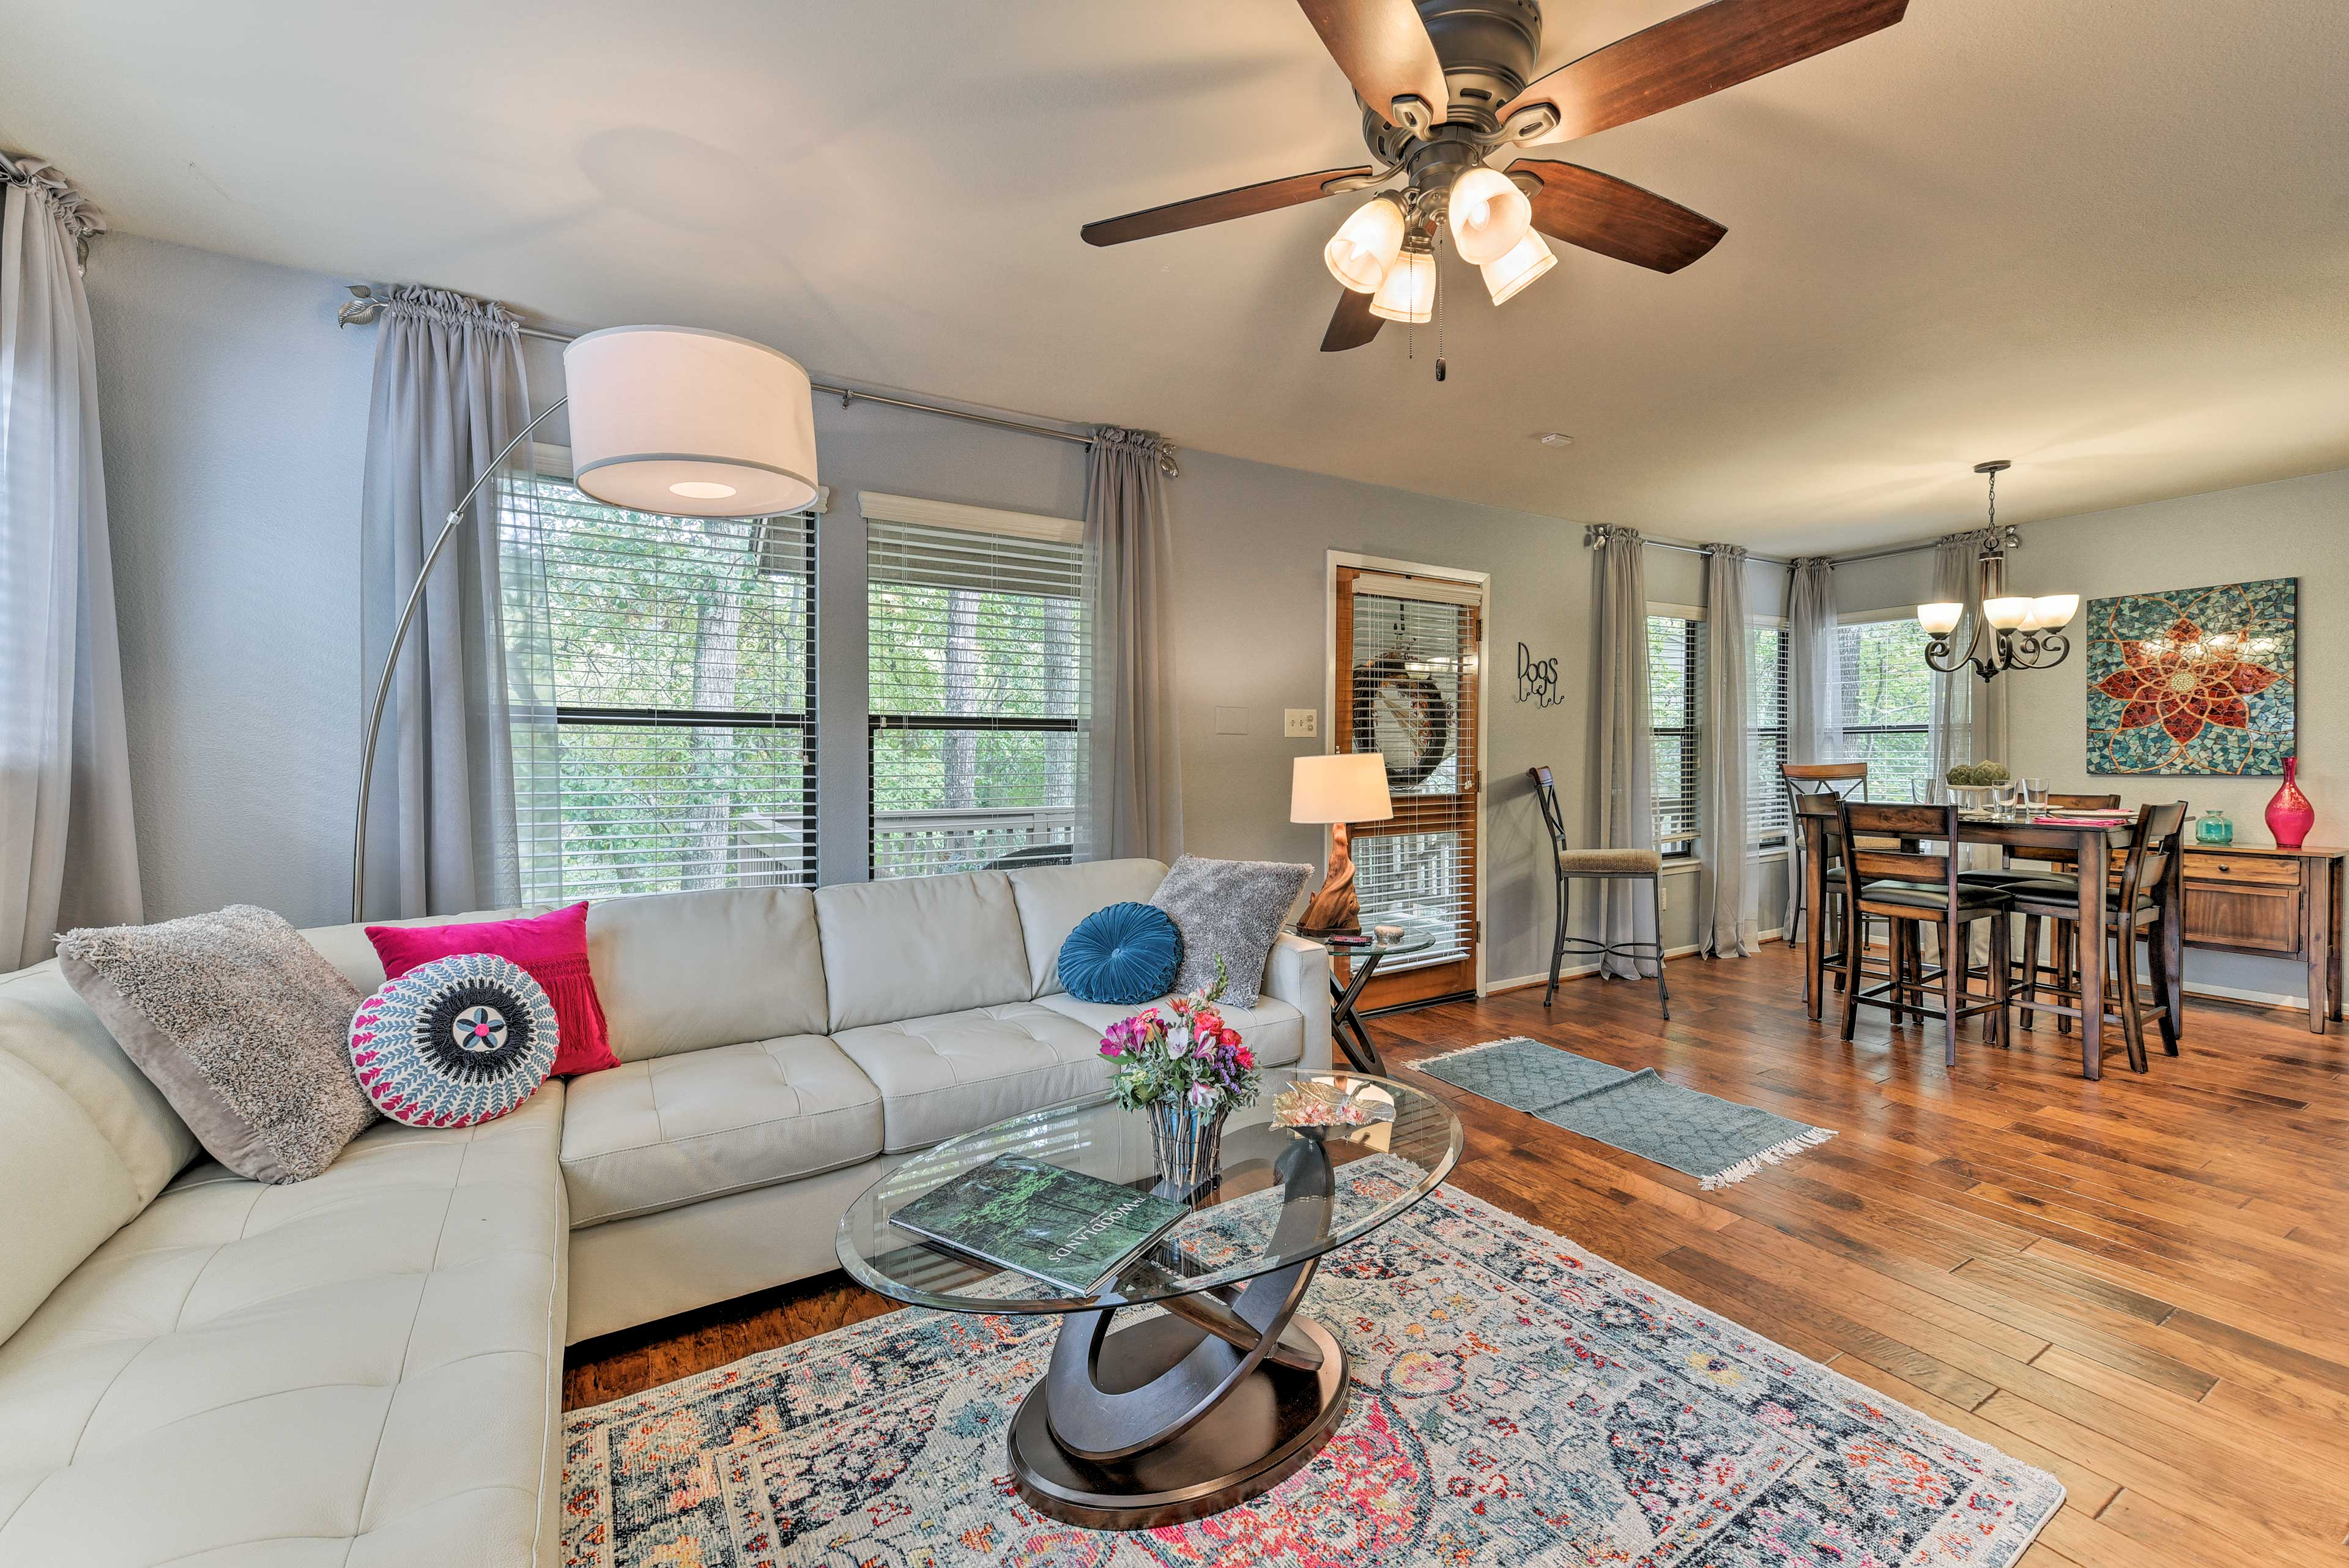 Woodlands Vacation Rental Townhome | 2BR | 2BA | 1,012 Sq Ft | Stairs Required